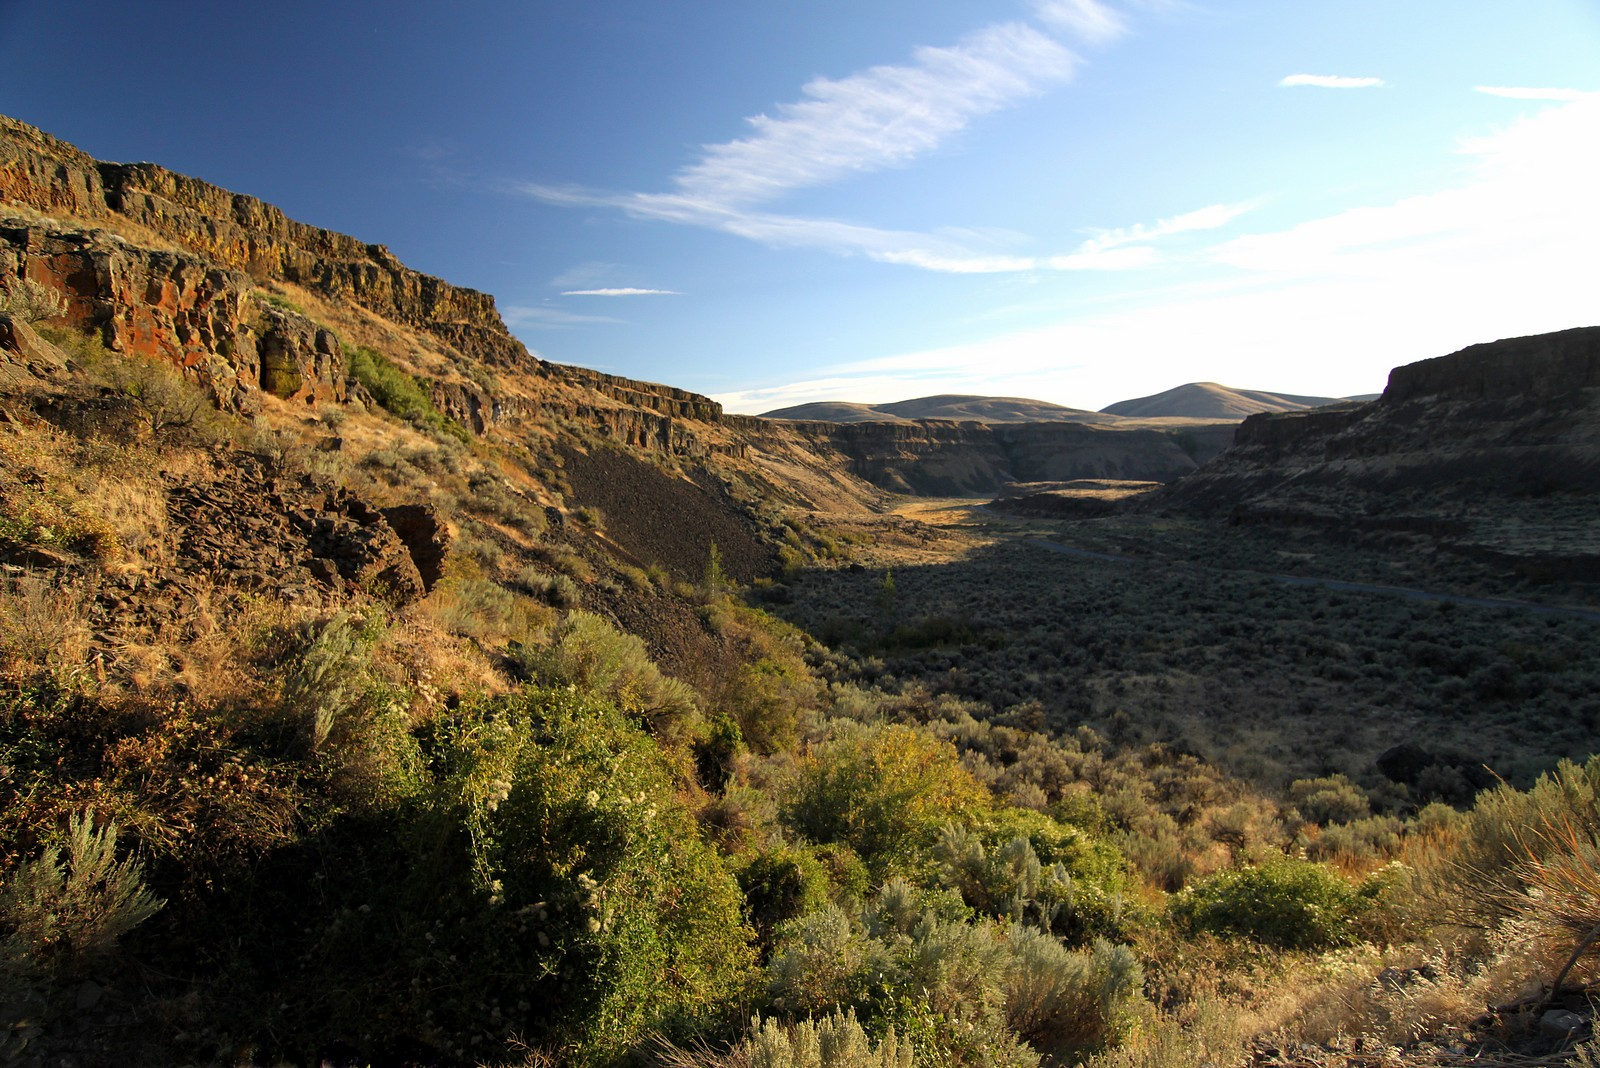 Moses Coulee, Channeled Scablands